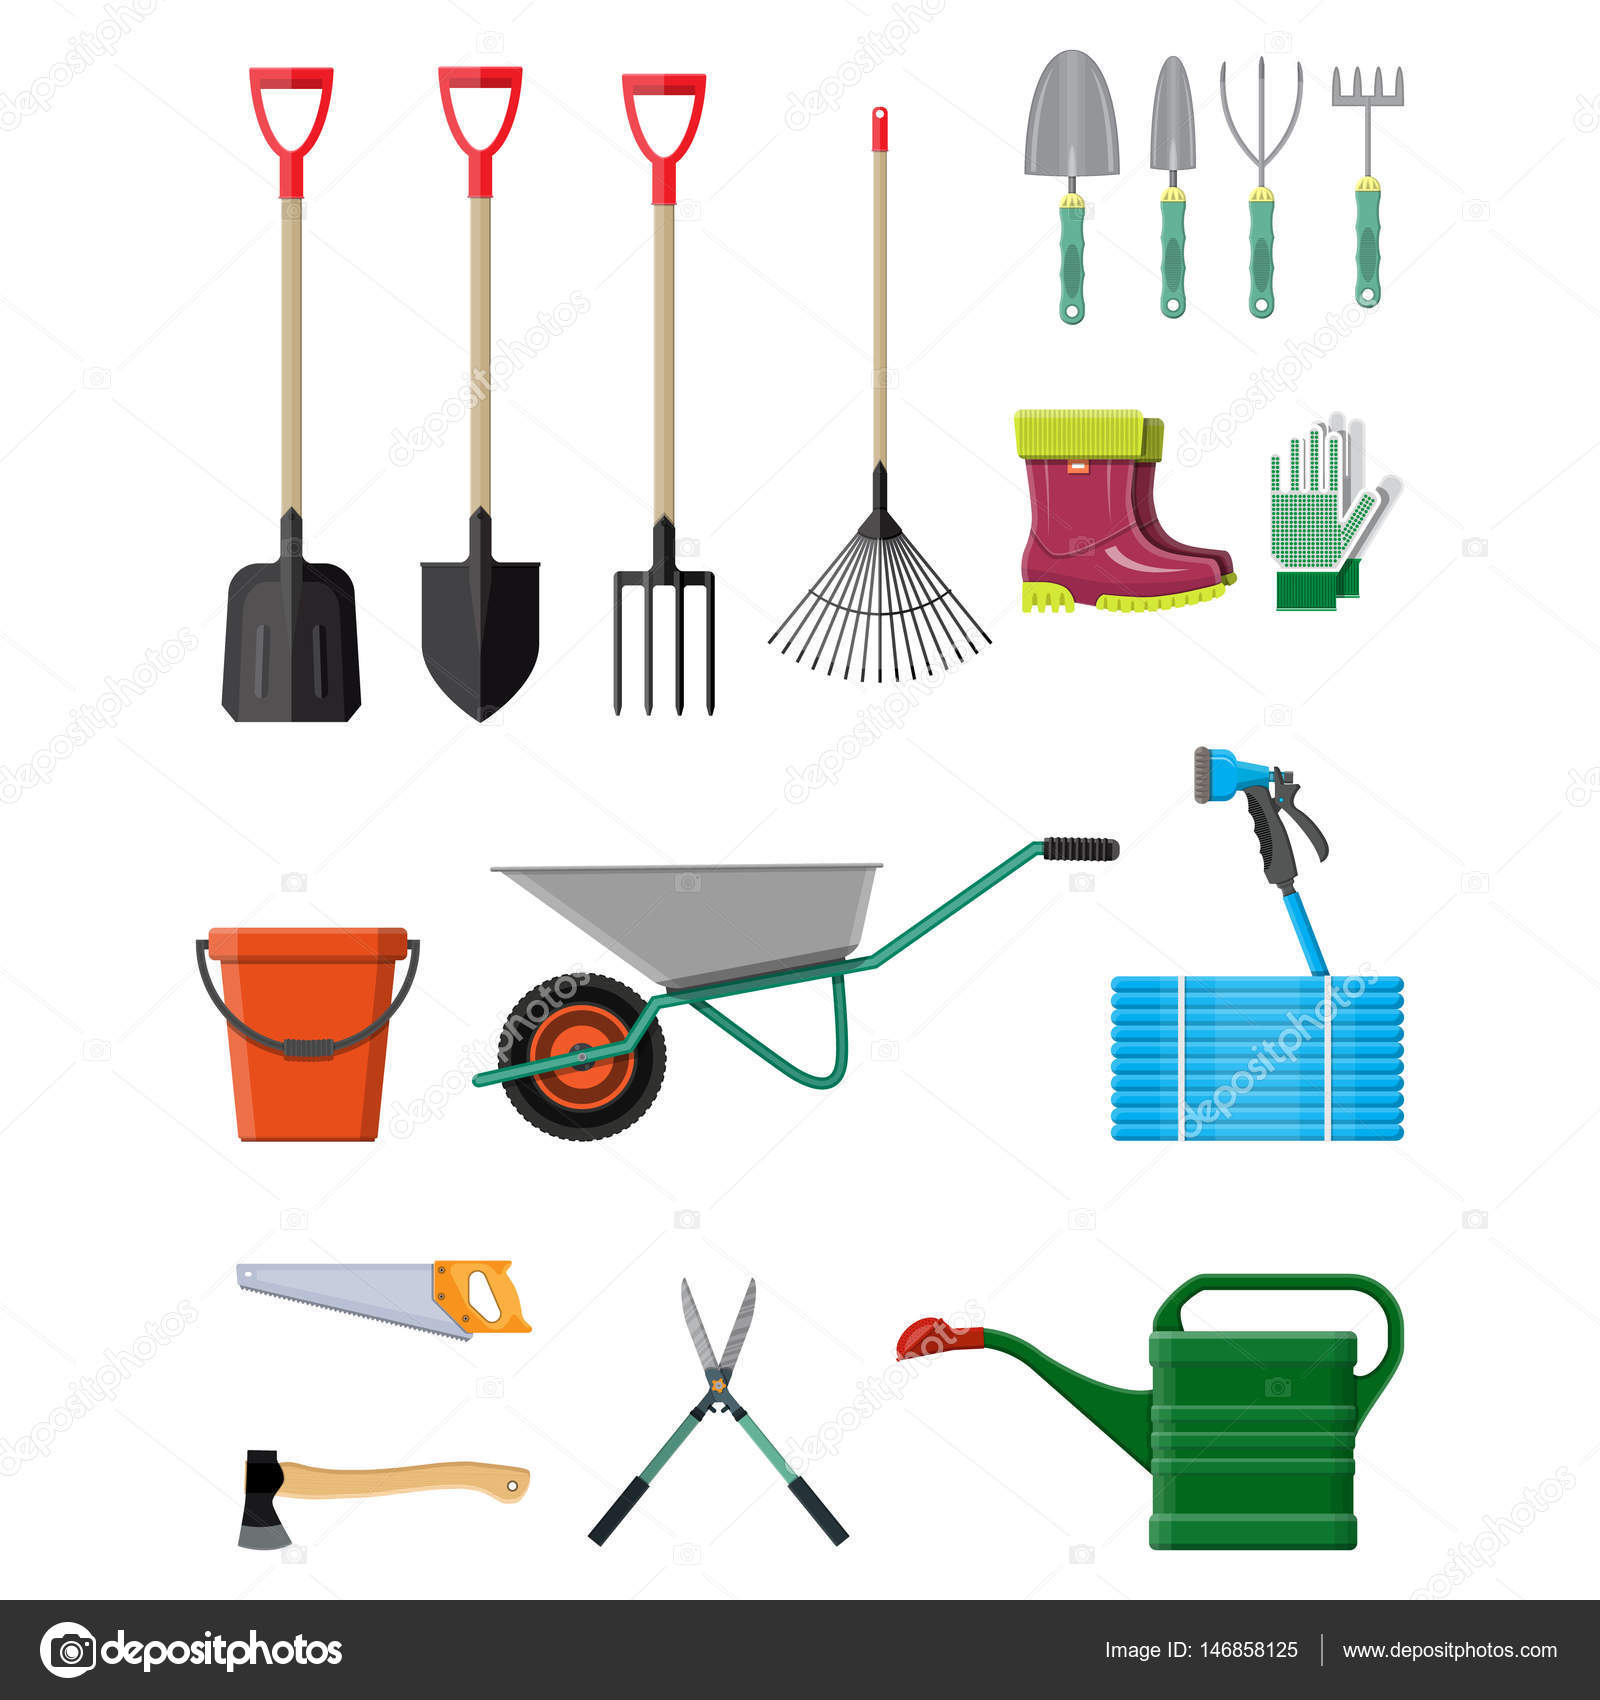 Gardening tools set equipment for garden stock vector for Different tools and equipment in horticulture